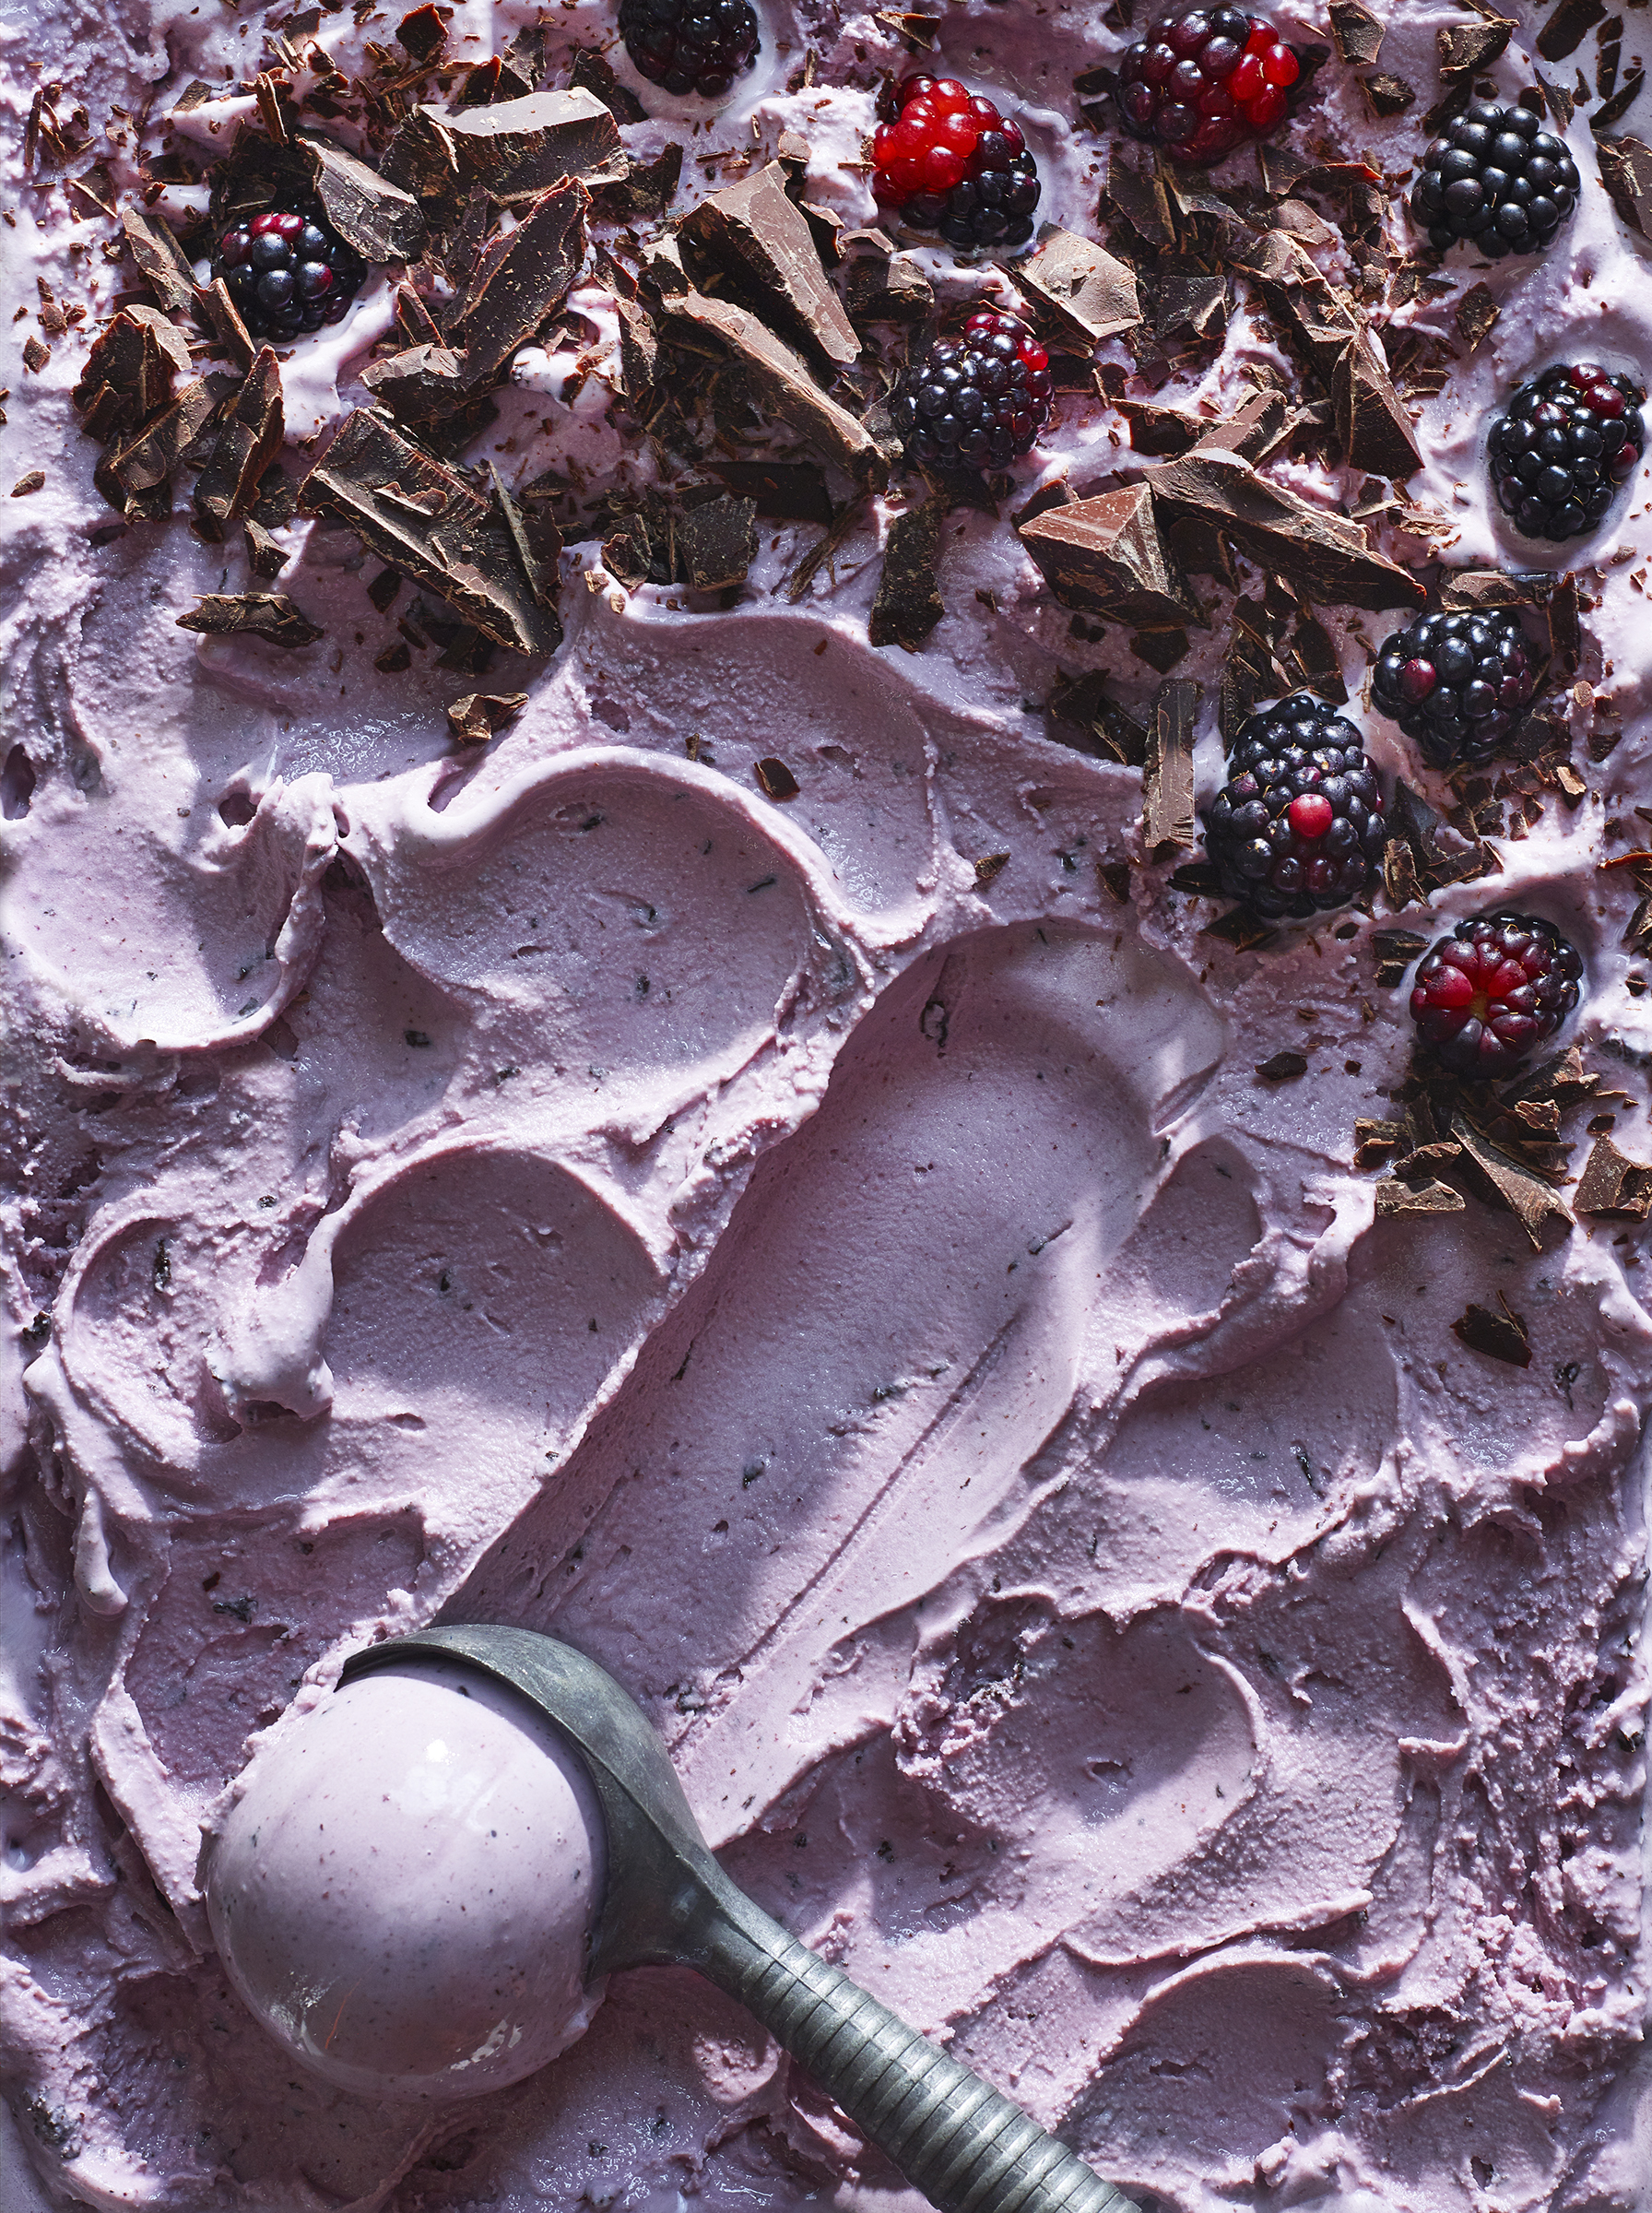 Icecream_Blackberry_LowRes